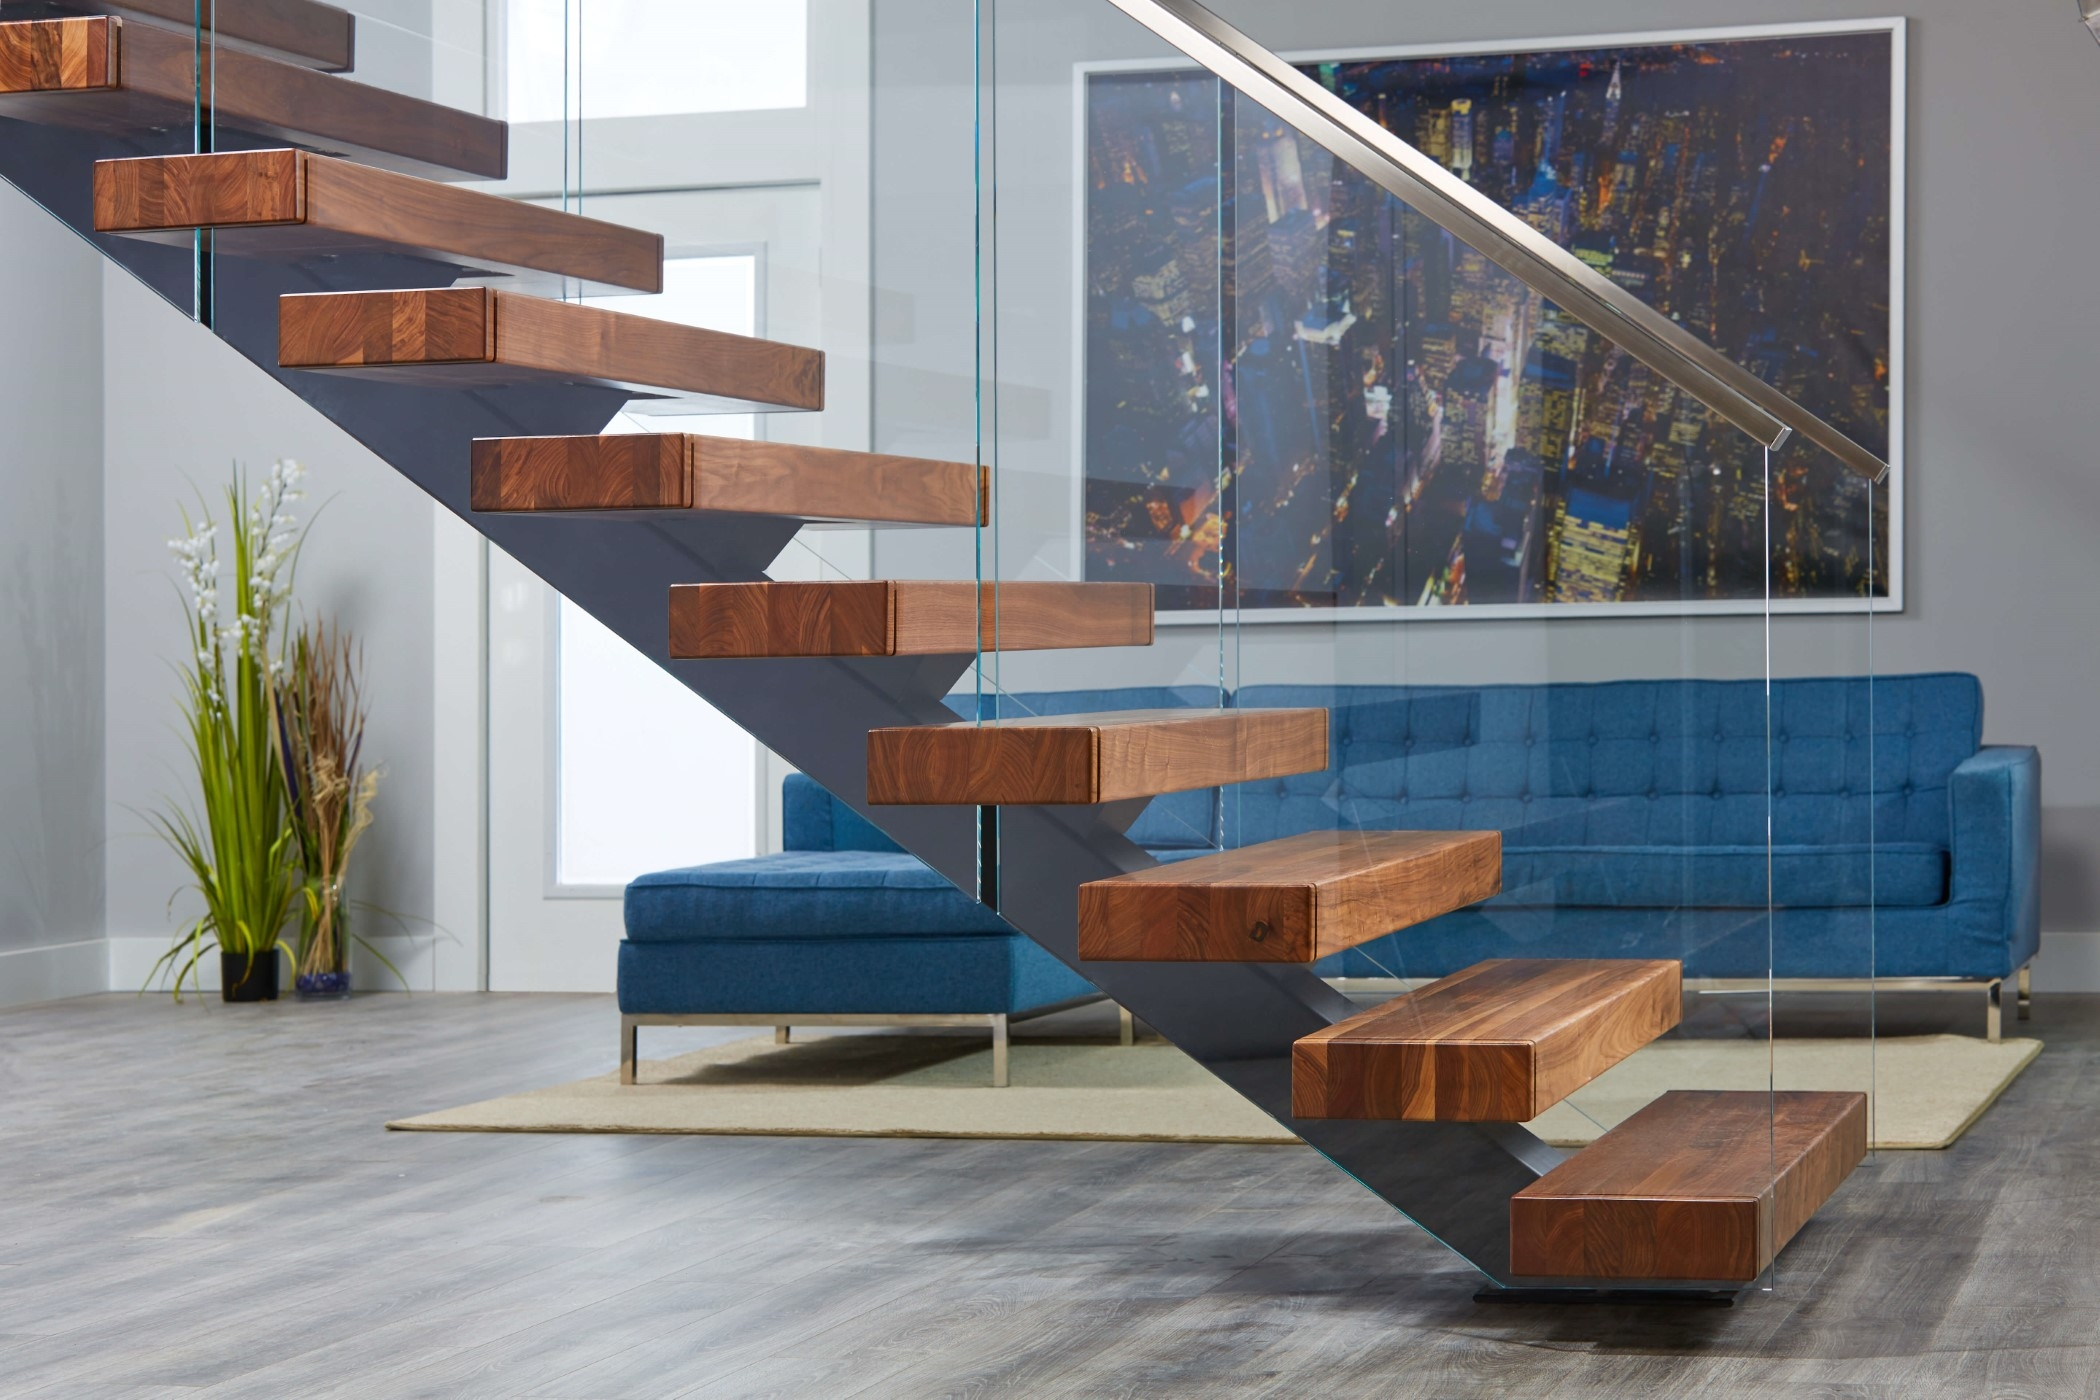 Viewrail Floating Stairs And Modern Railing For Stairs | Wooden Handrails For Outside Steps | Staircase | Building | Wrought Iron | Concrete Steps | Deck